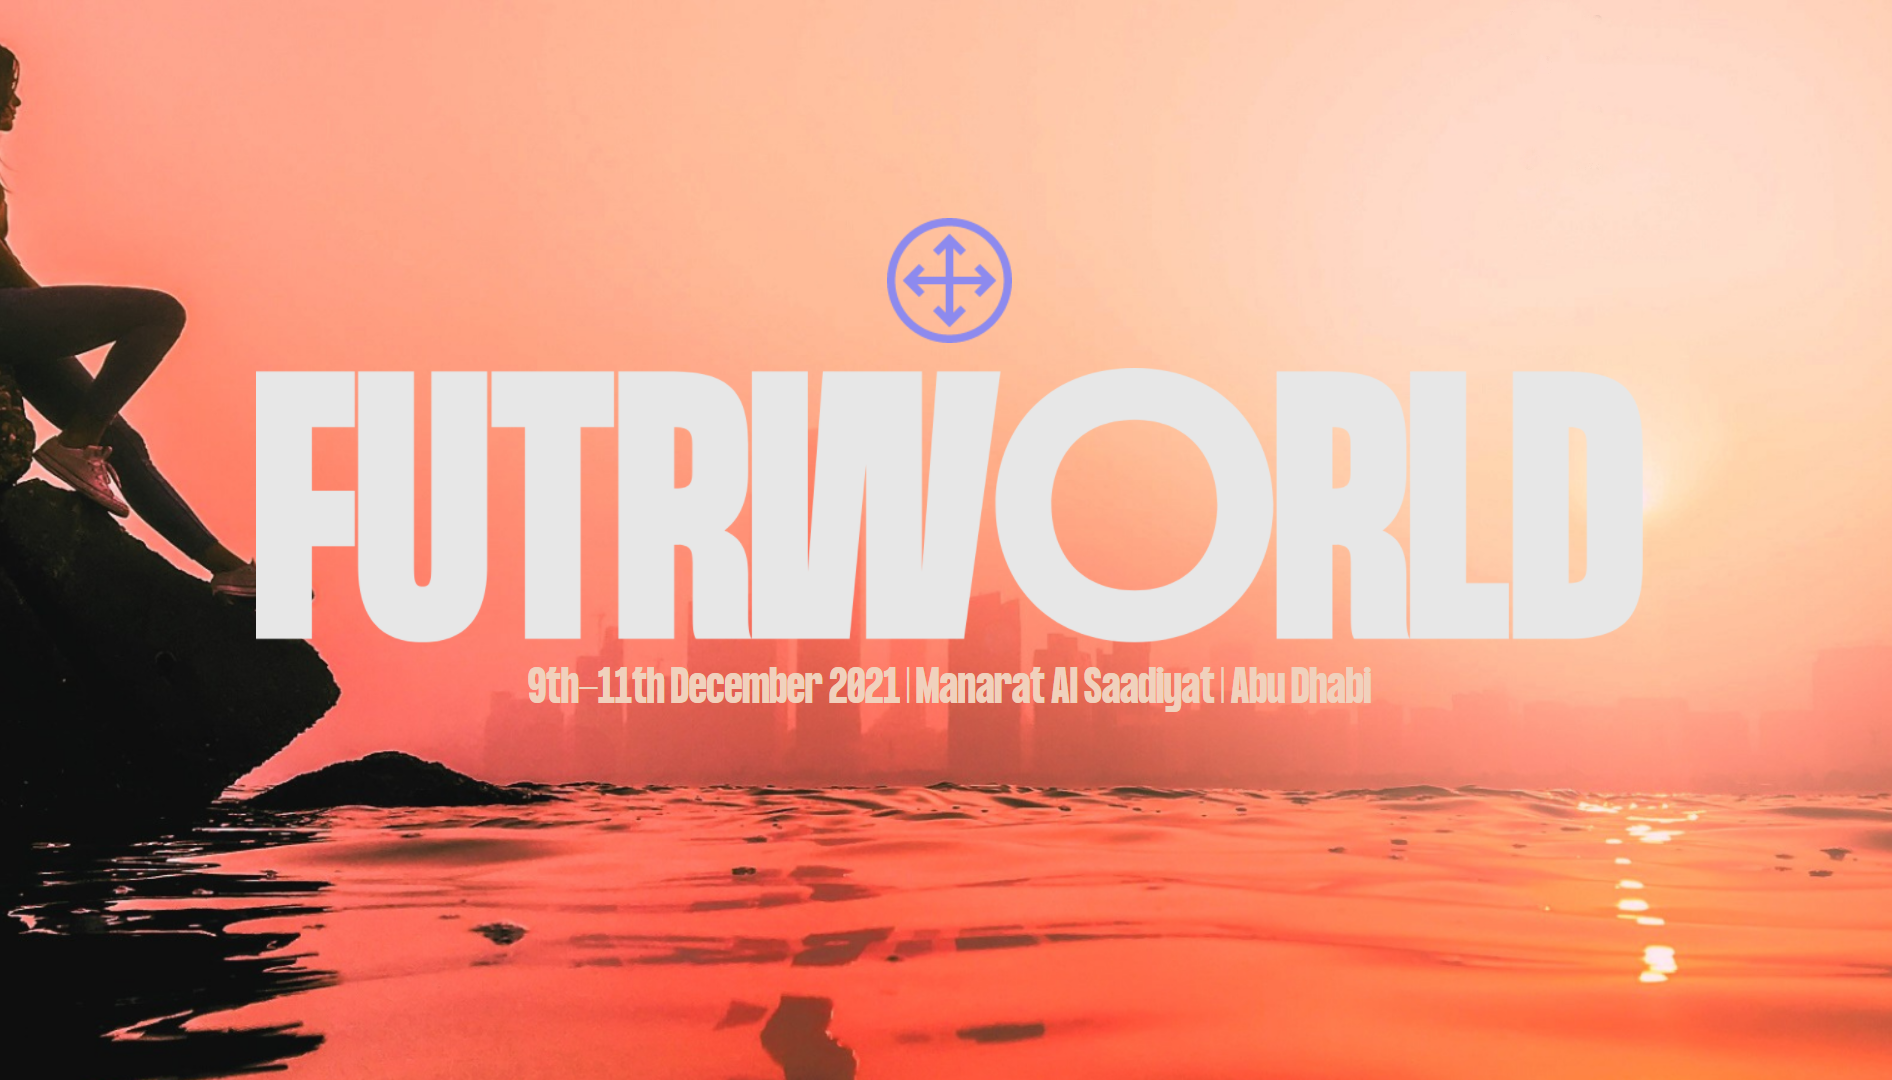 Register today: FUTR World Middle East event headlined by influential business leaders and brands